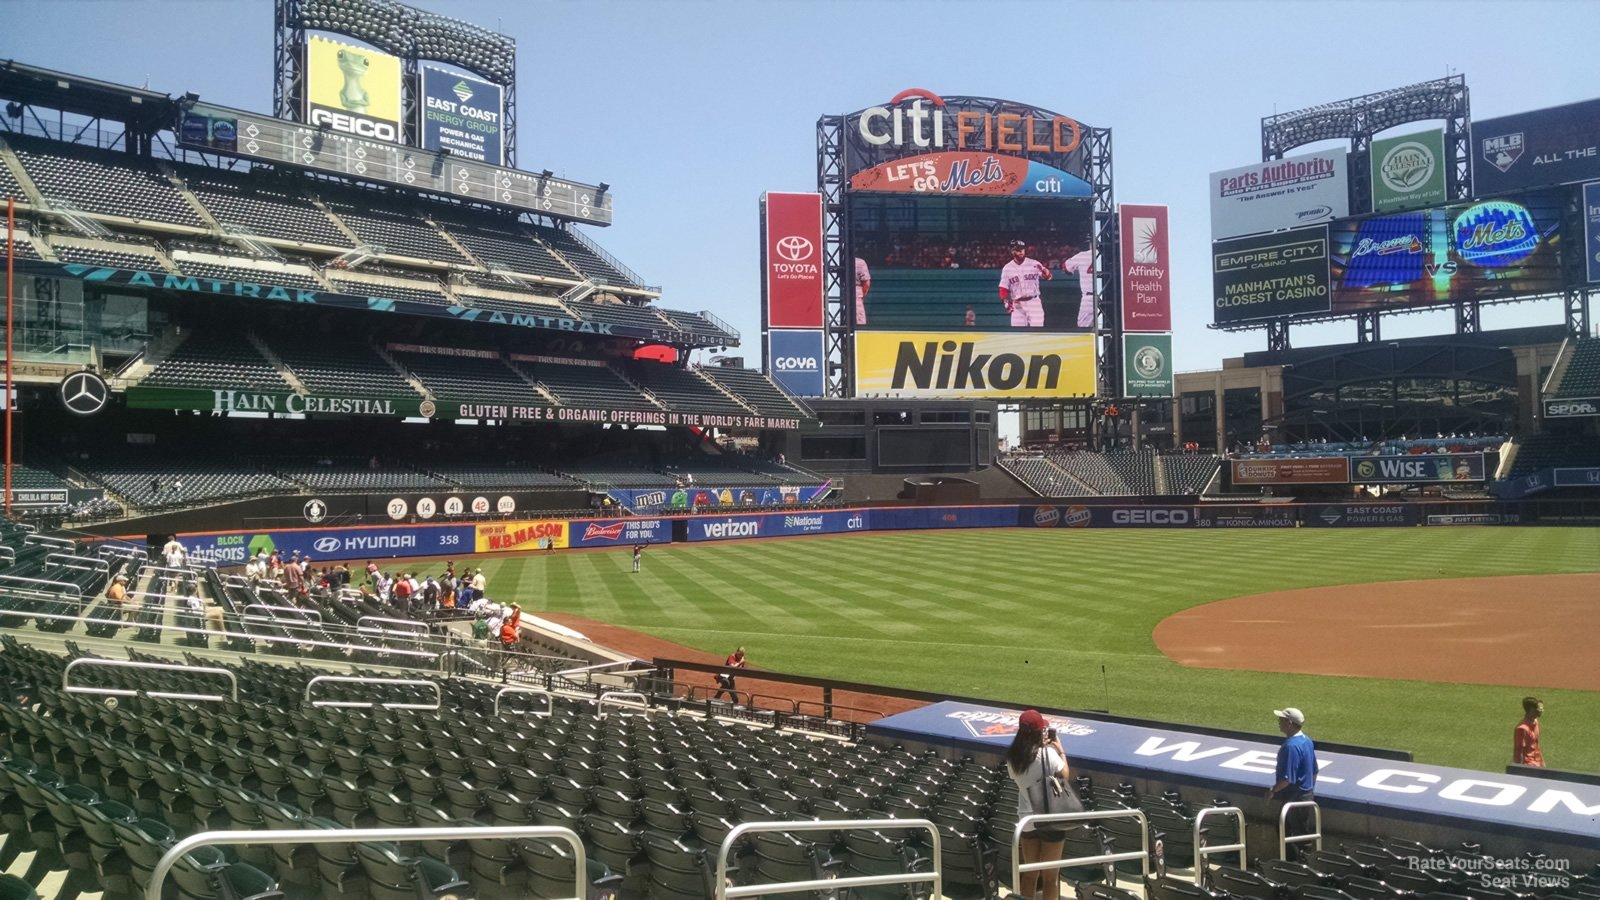 Citi Field Section 122 - RateYourSeats.com on